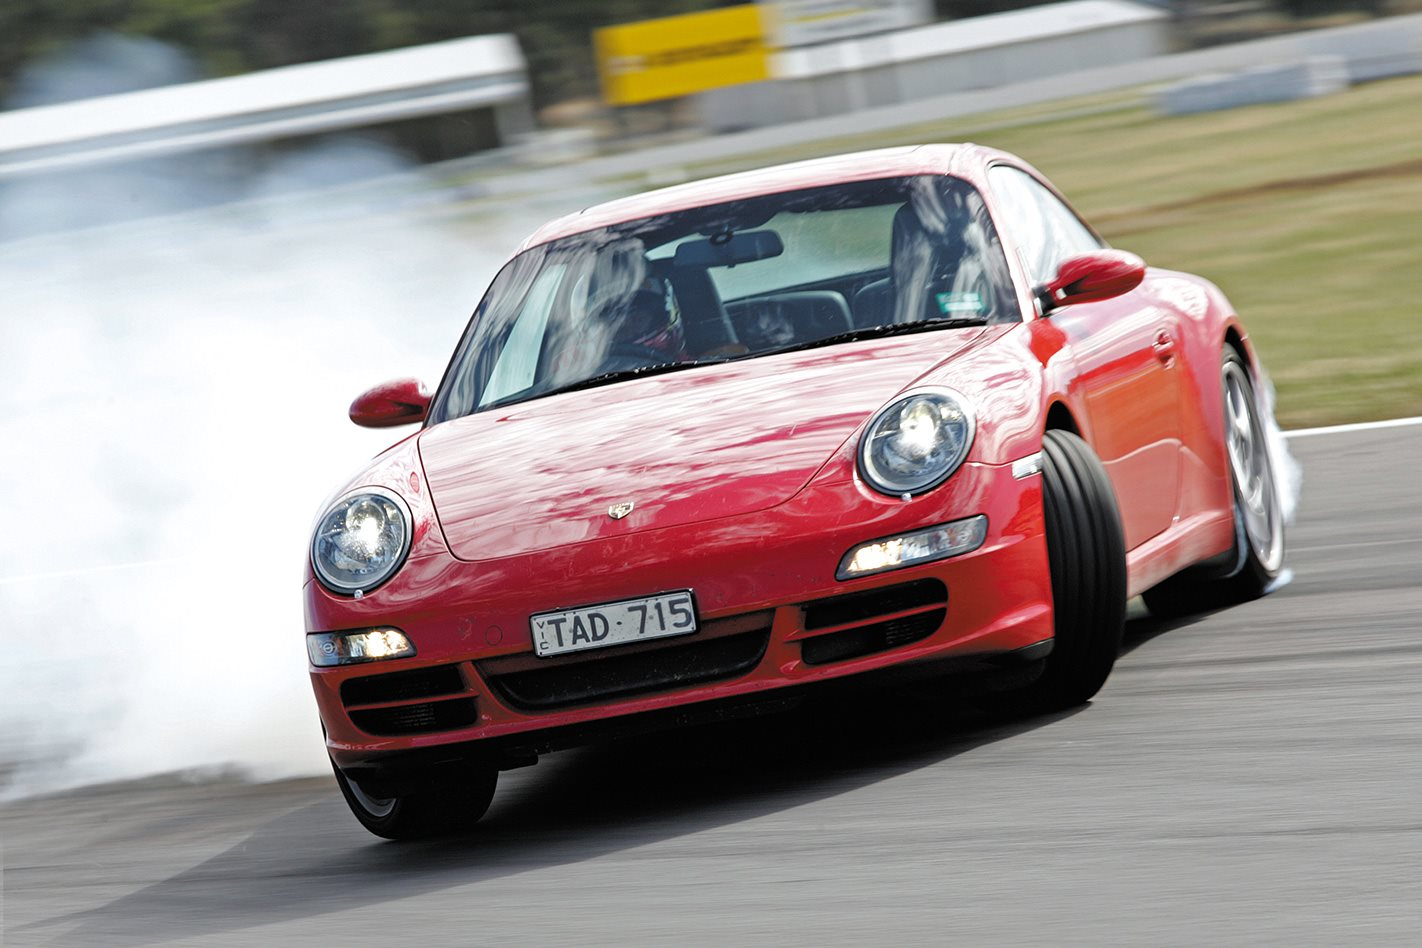 Porsche 911 Carrera S Wins Performance Car Of The Year 2005 Classic